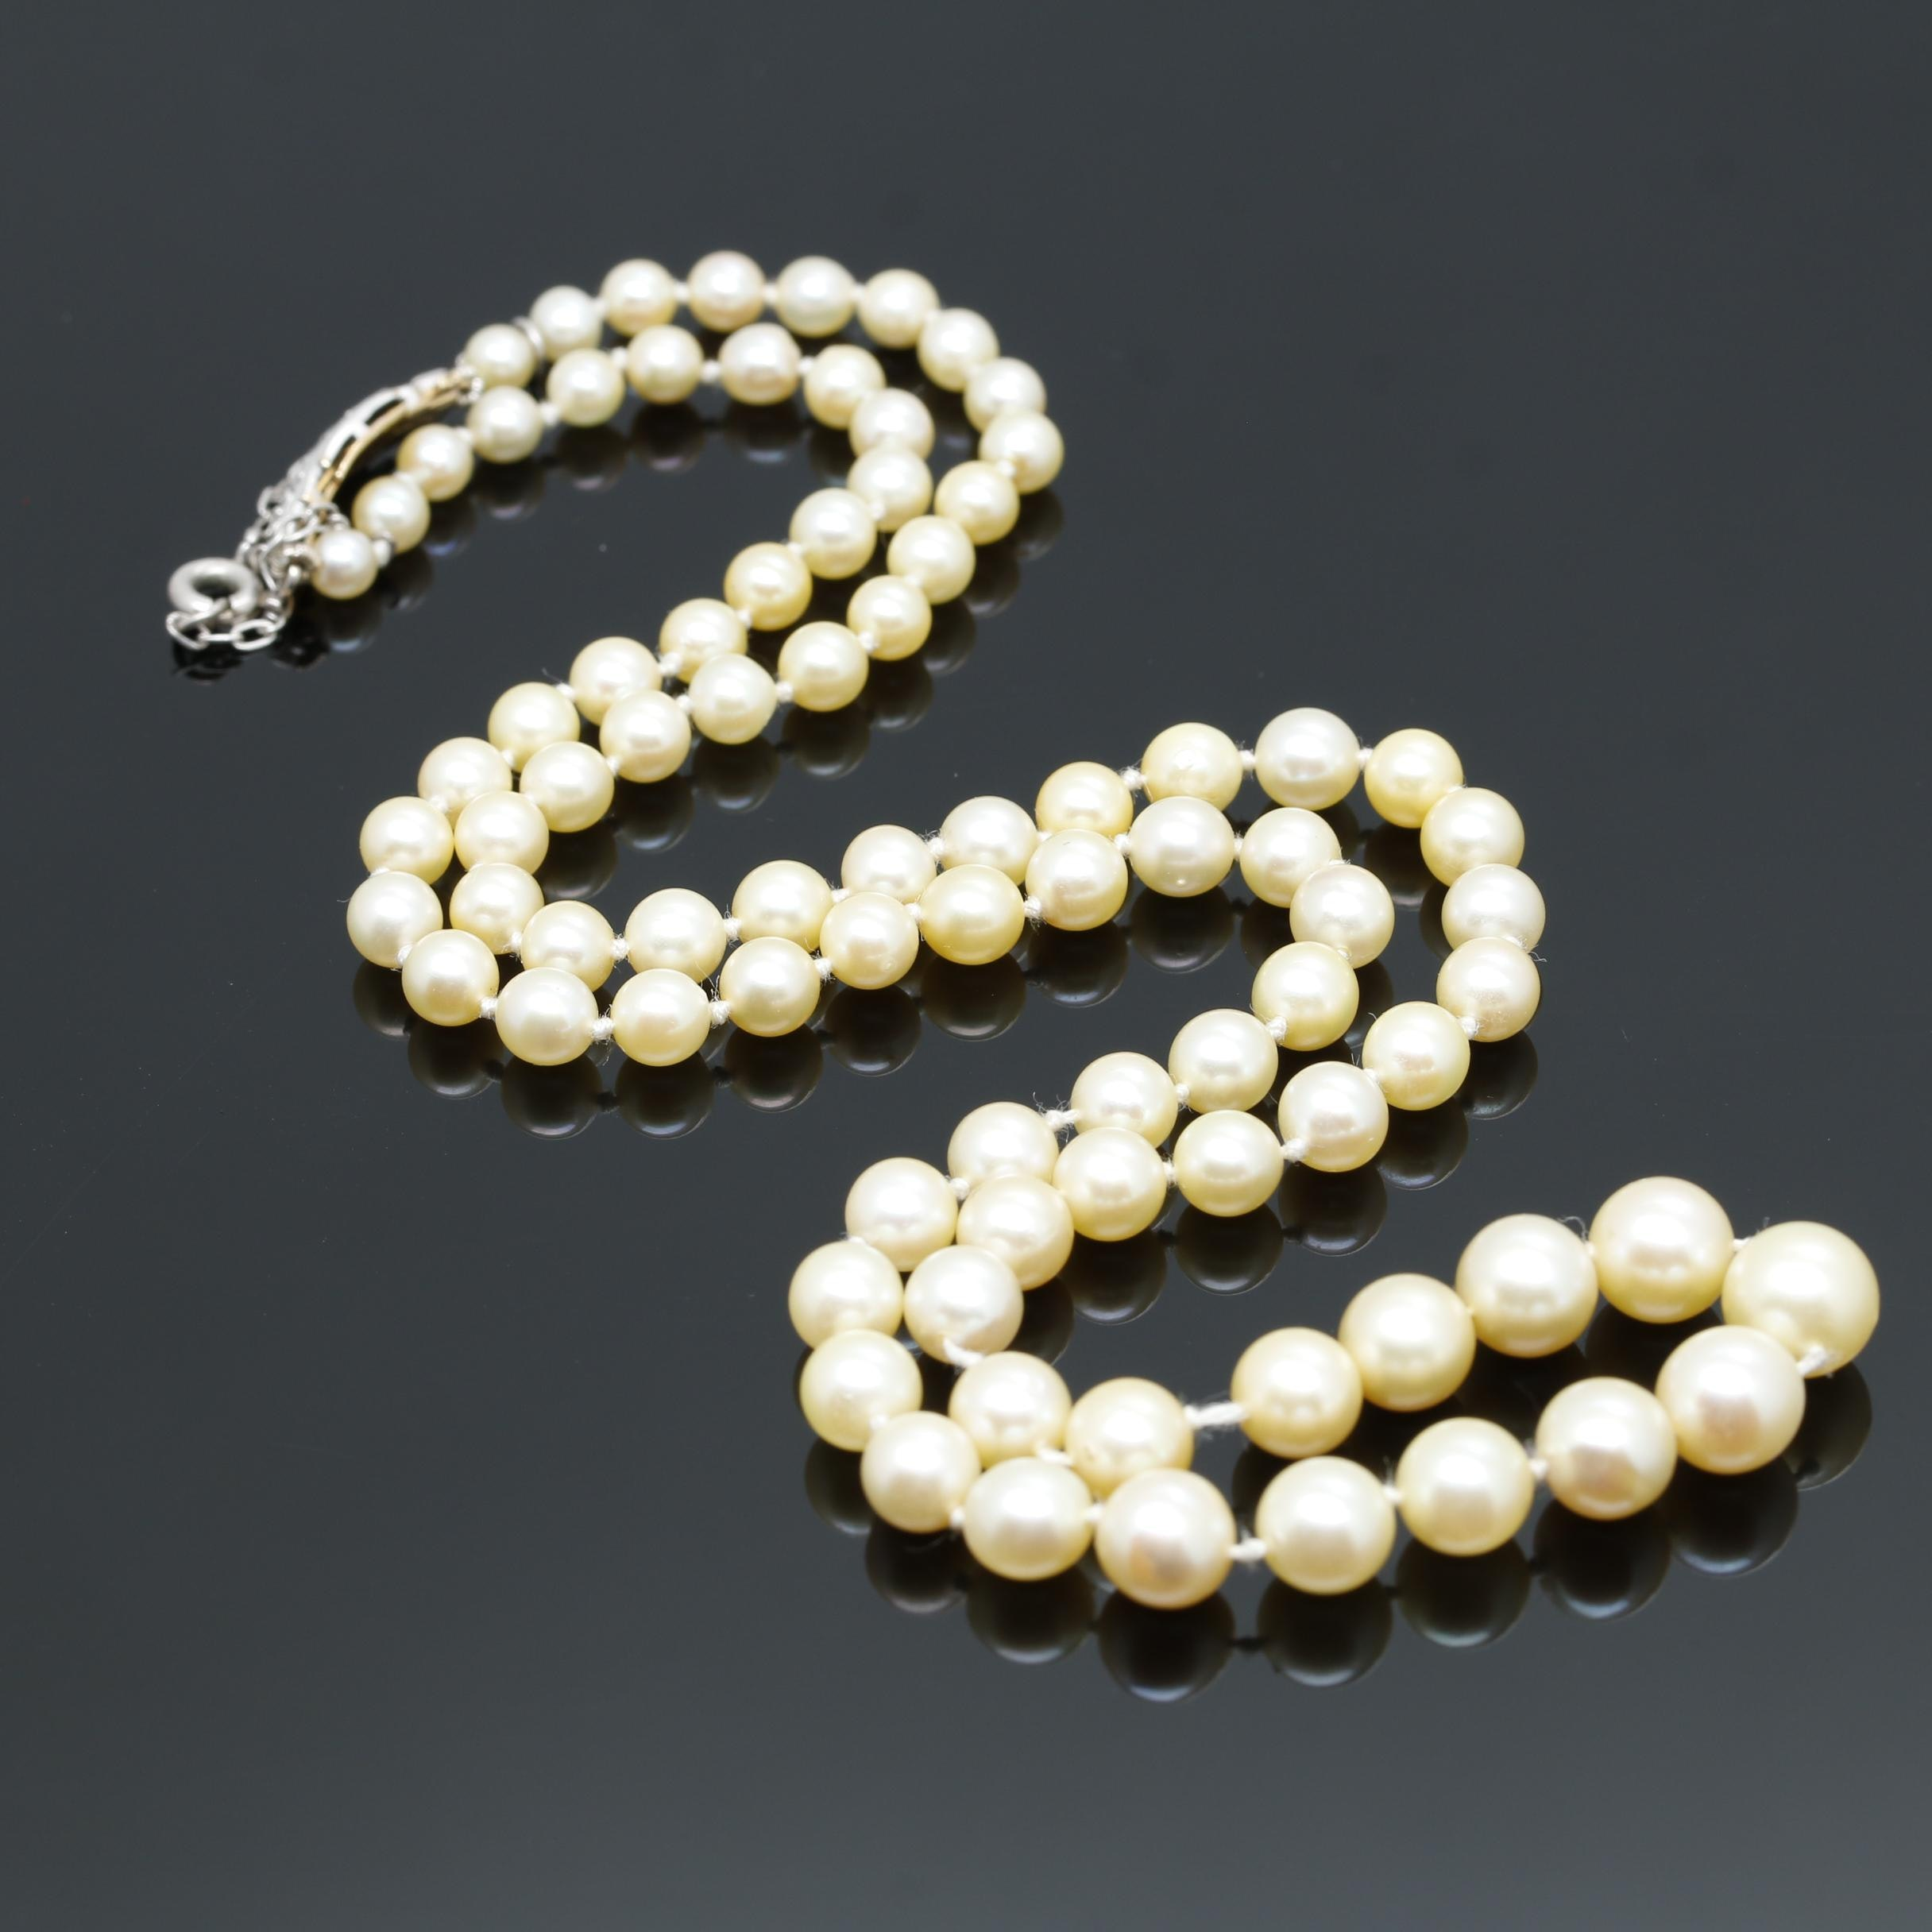 18K Two Tone Gold Cultured Pearl Necklace With Diamond Accent